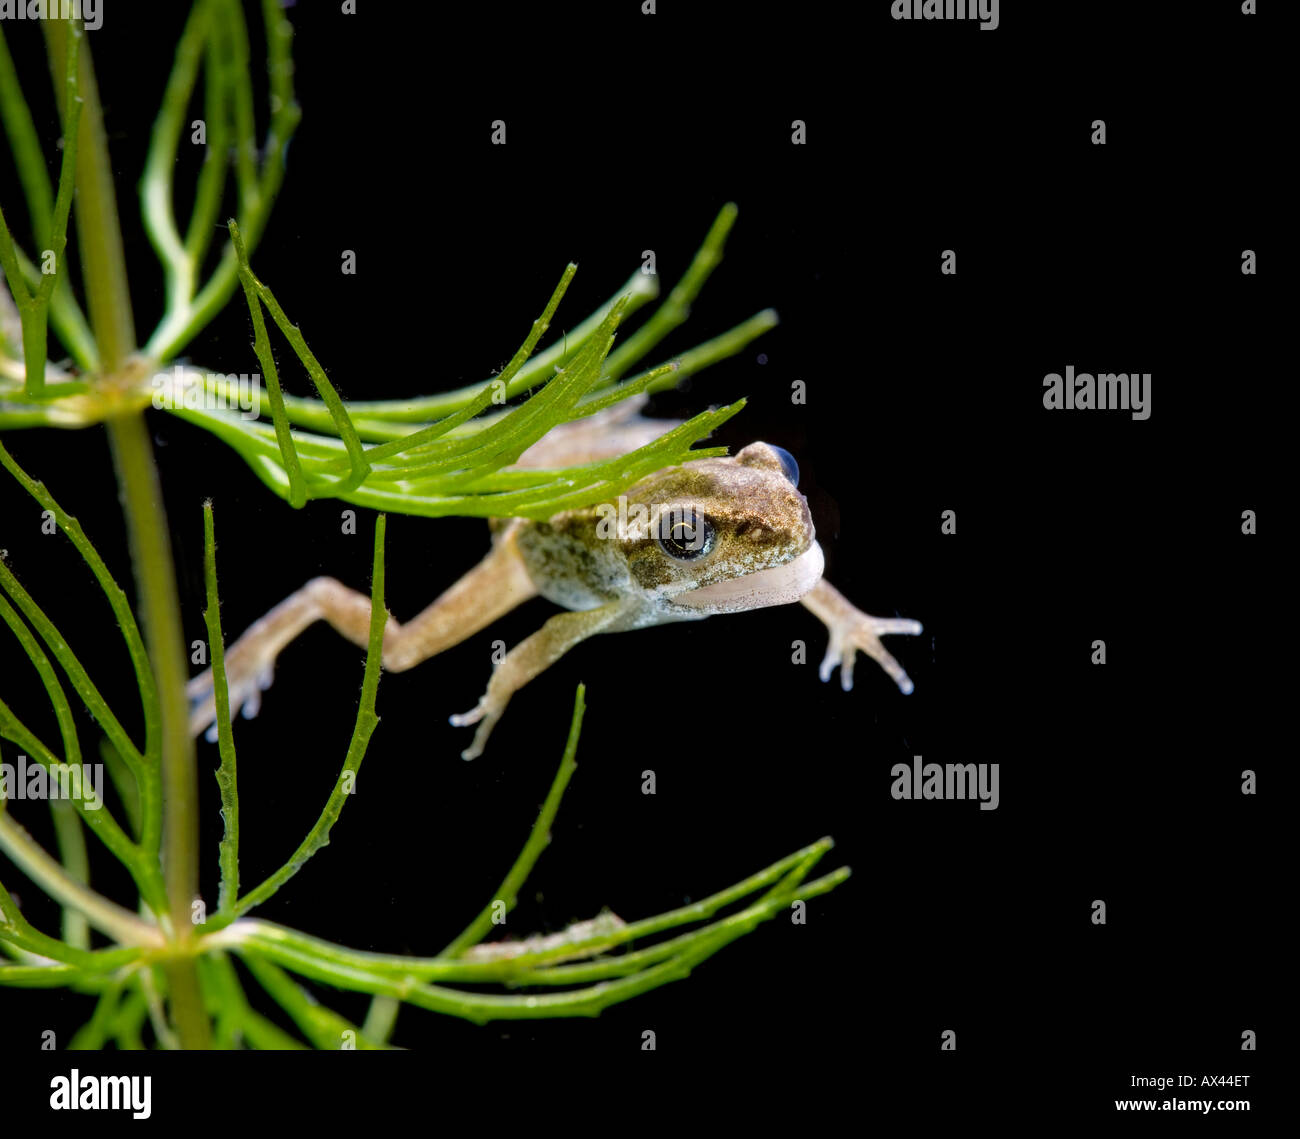 Common frog Rana temporaria tadpole with 4 legs no tail - Stock Image